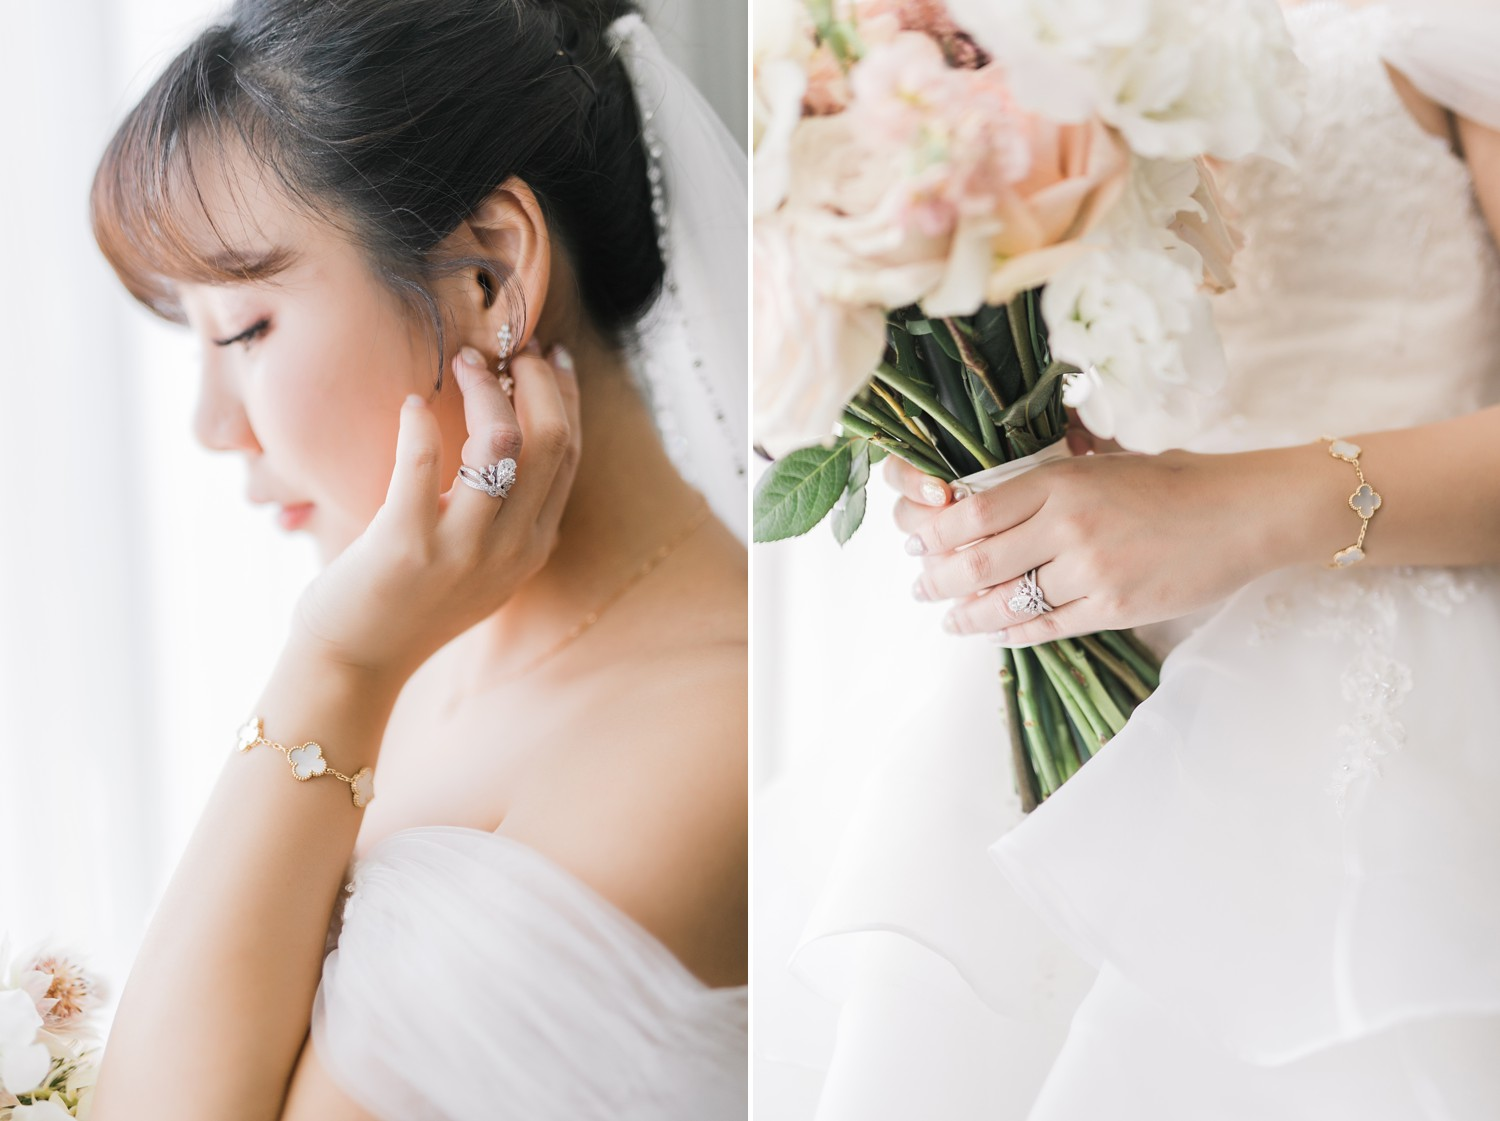 Bridal Portraits with Van Cleef Bracelet and AngelaBaby Wedding Ring Luxury Yorkville Vinci Toronto Four Season Hotel Wedding Photos with Chinese Bride and Groom